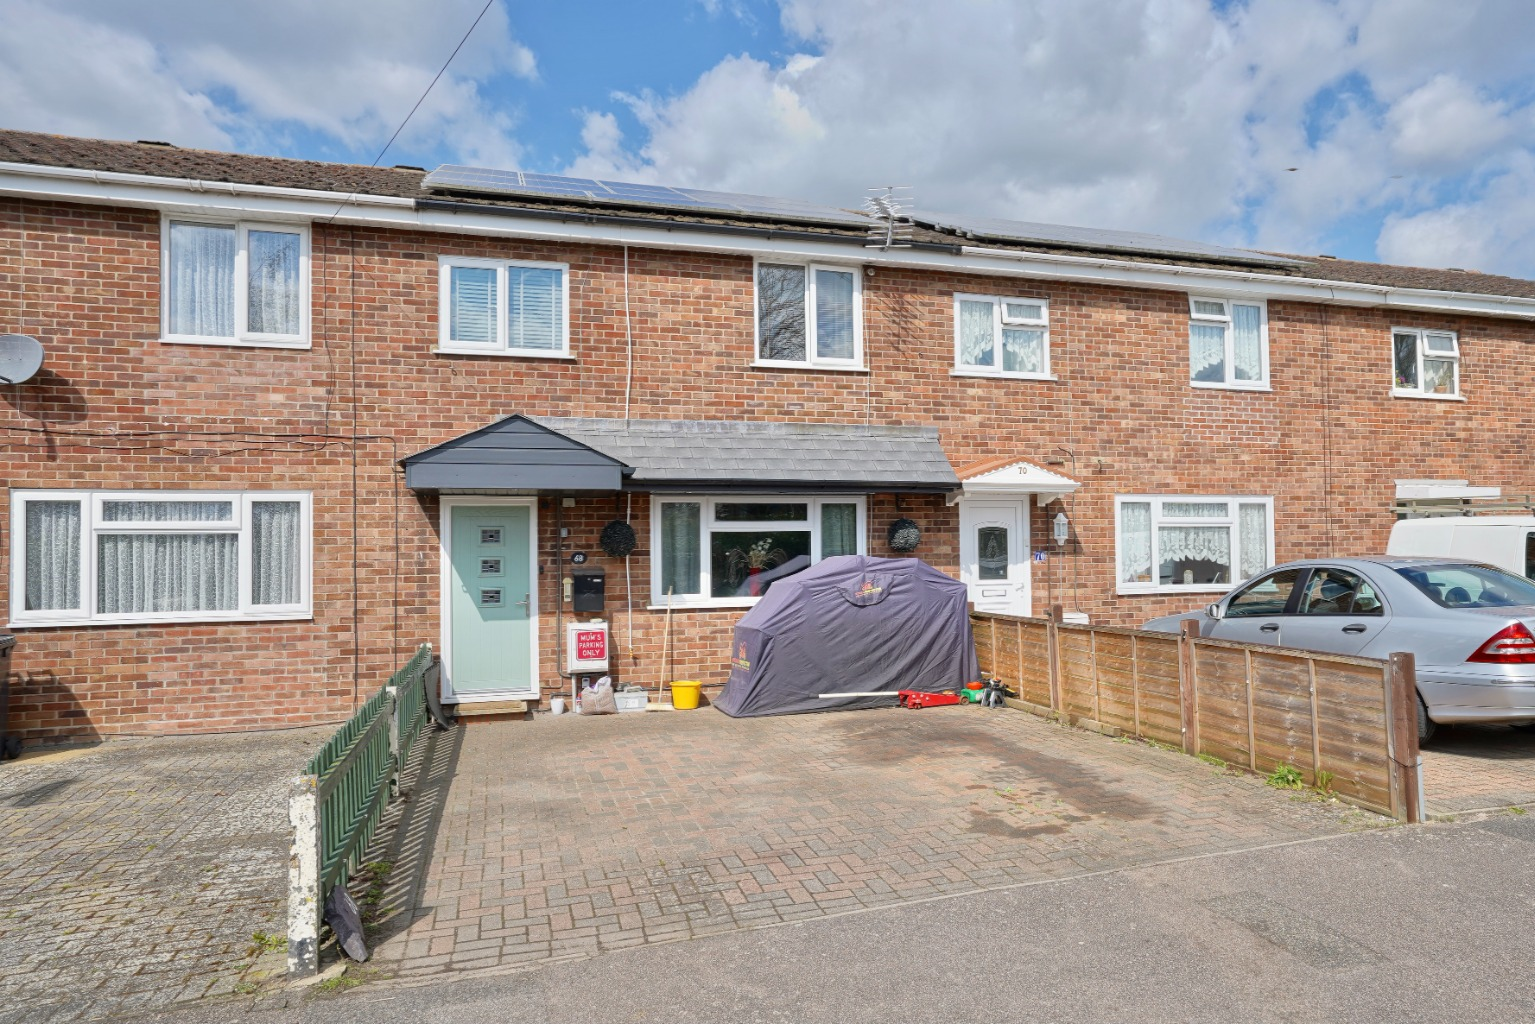 3 bed terraced house for sale in Henbrook, St. Neots  - Property Image 1